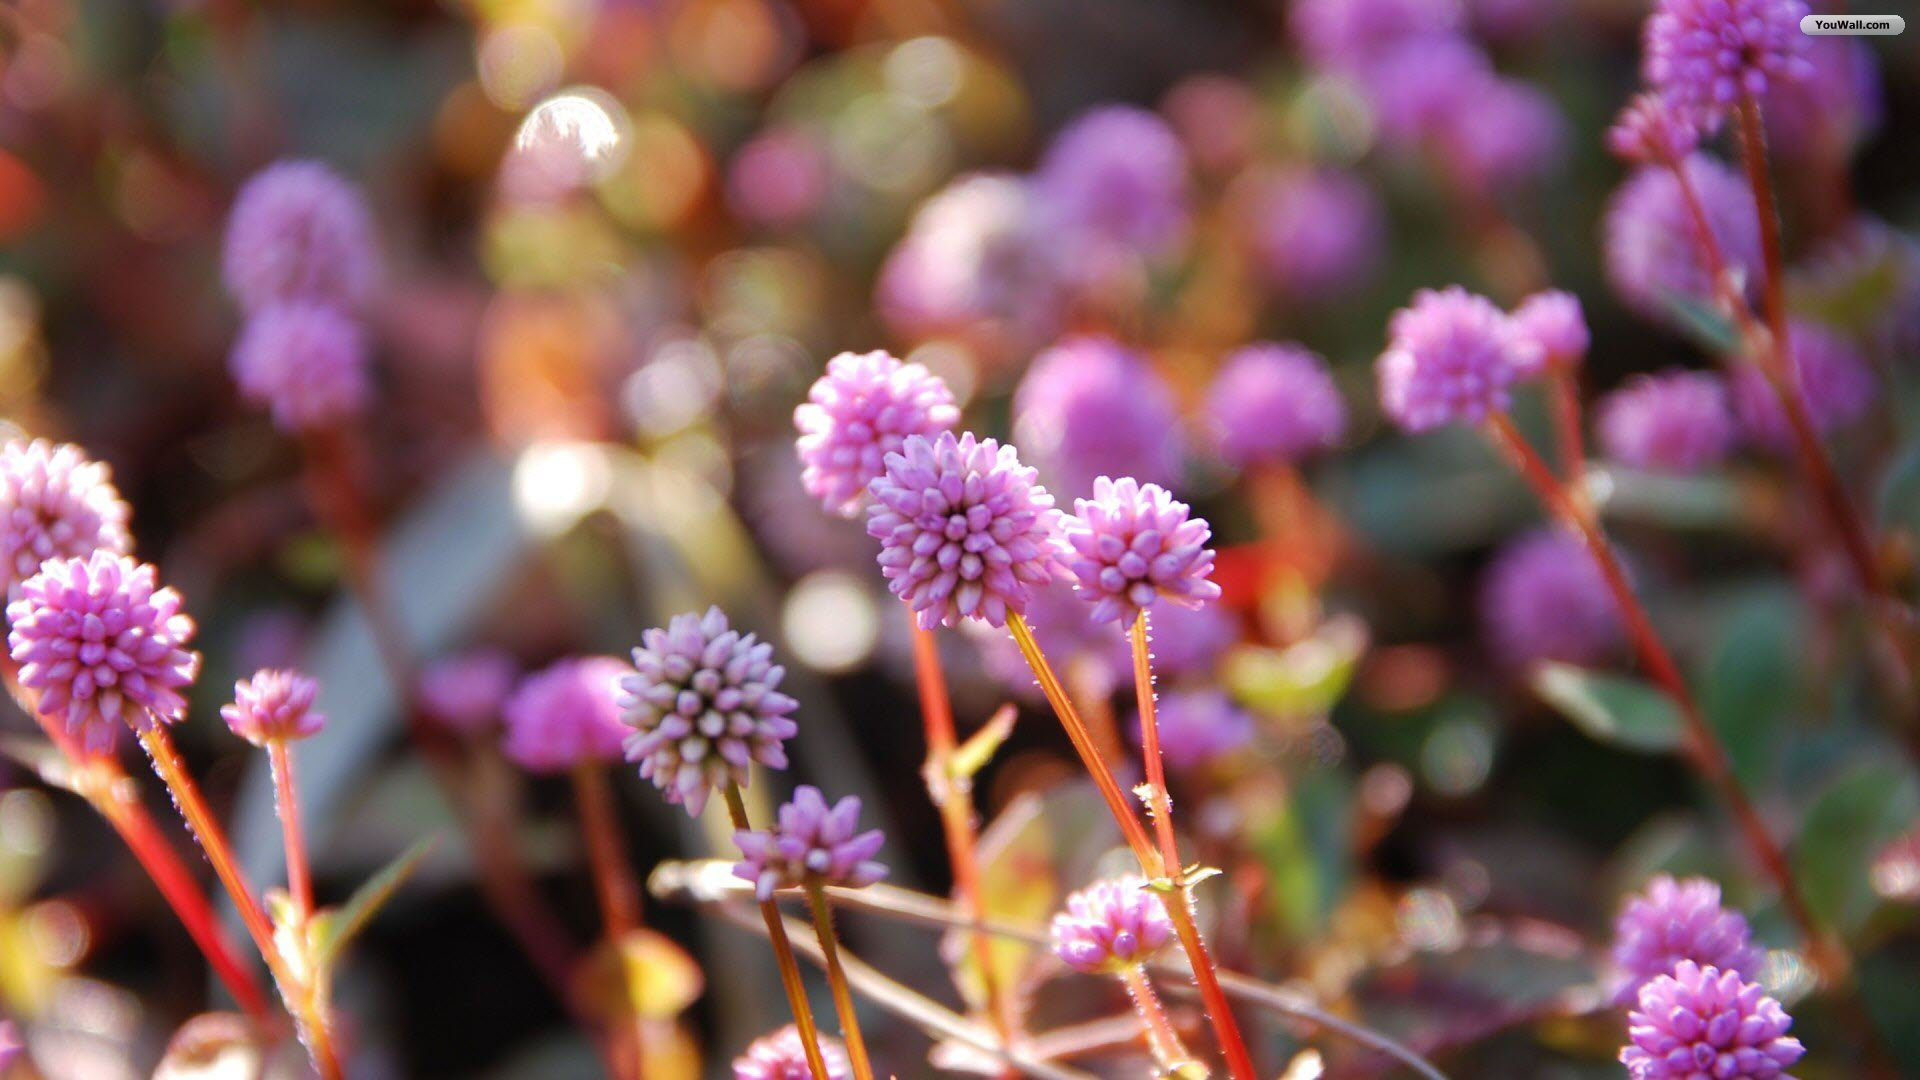 Little Pink Flowers Wallpaper   wallpaperwallpapersfree wallpaper 1920x1080